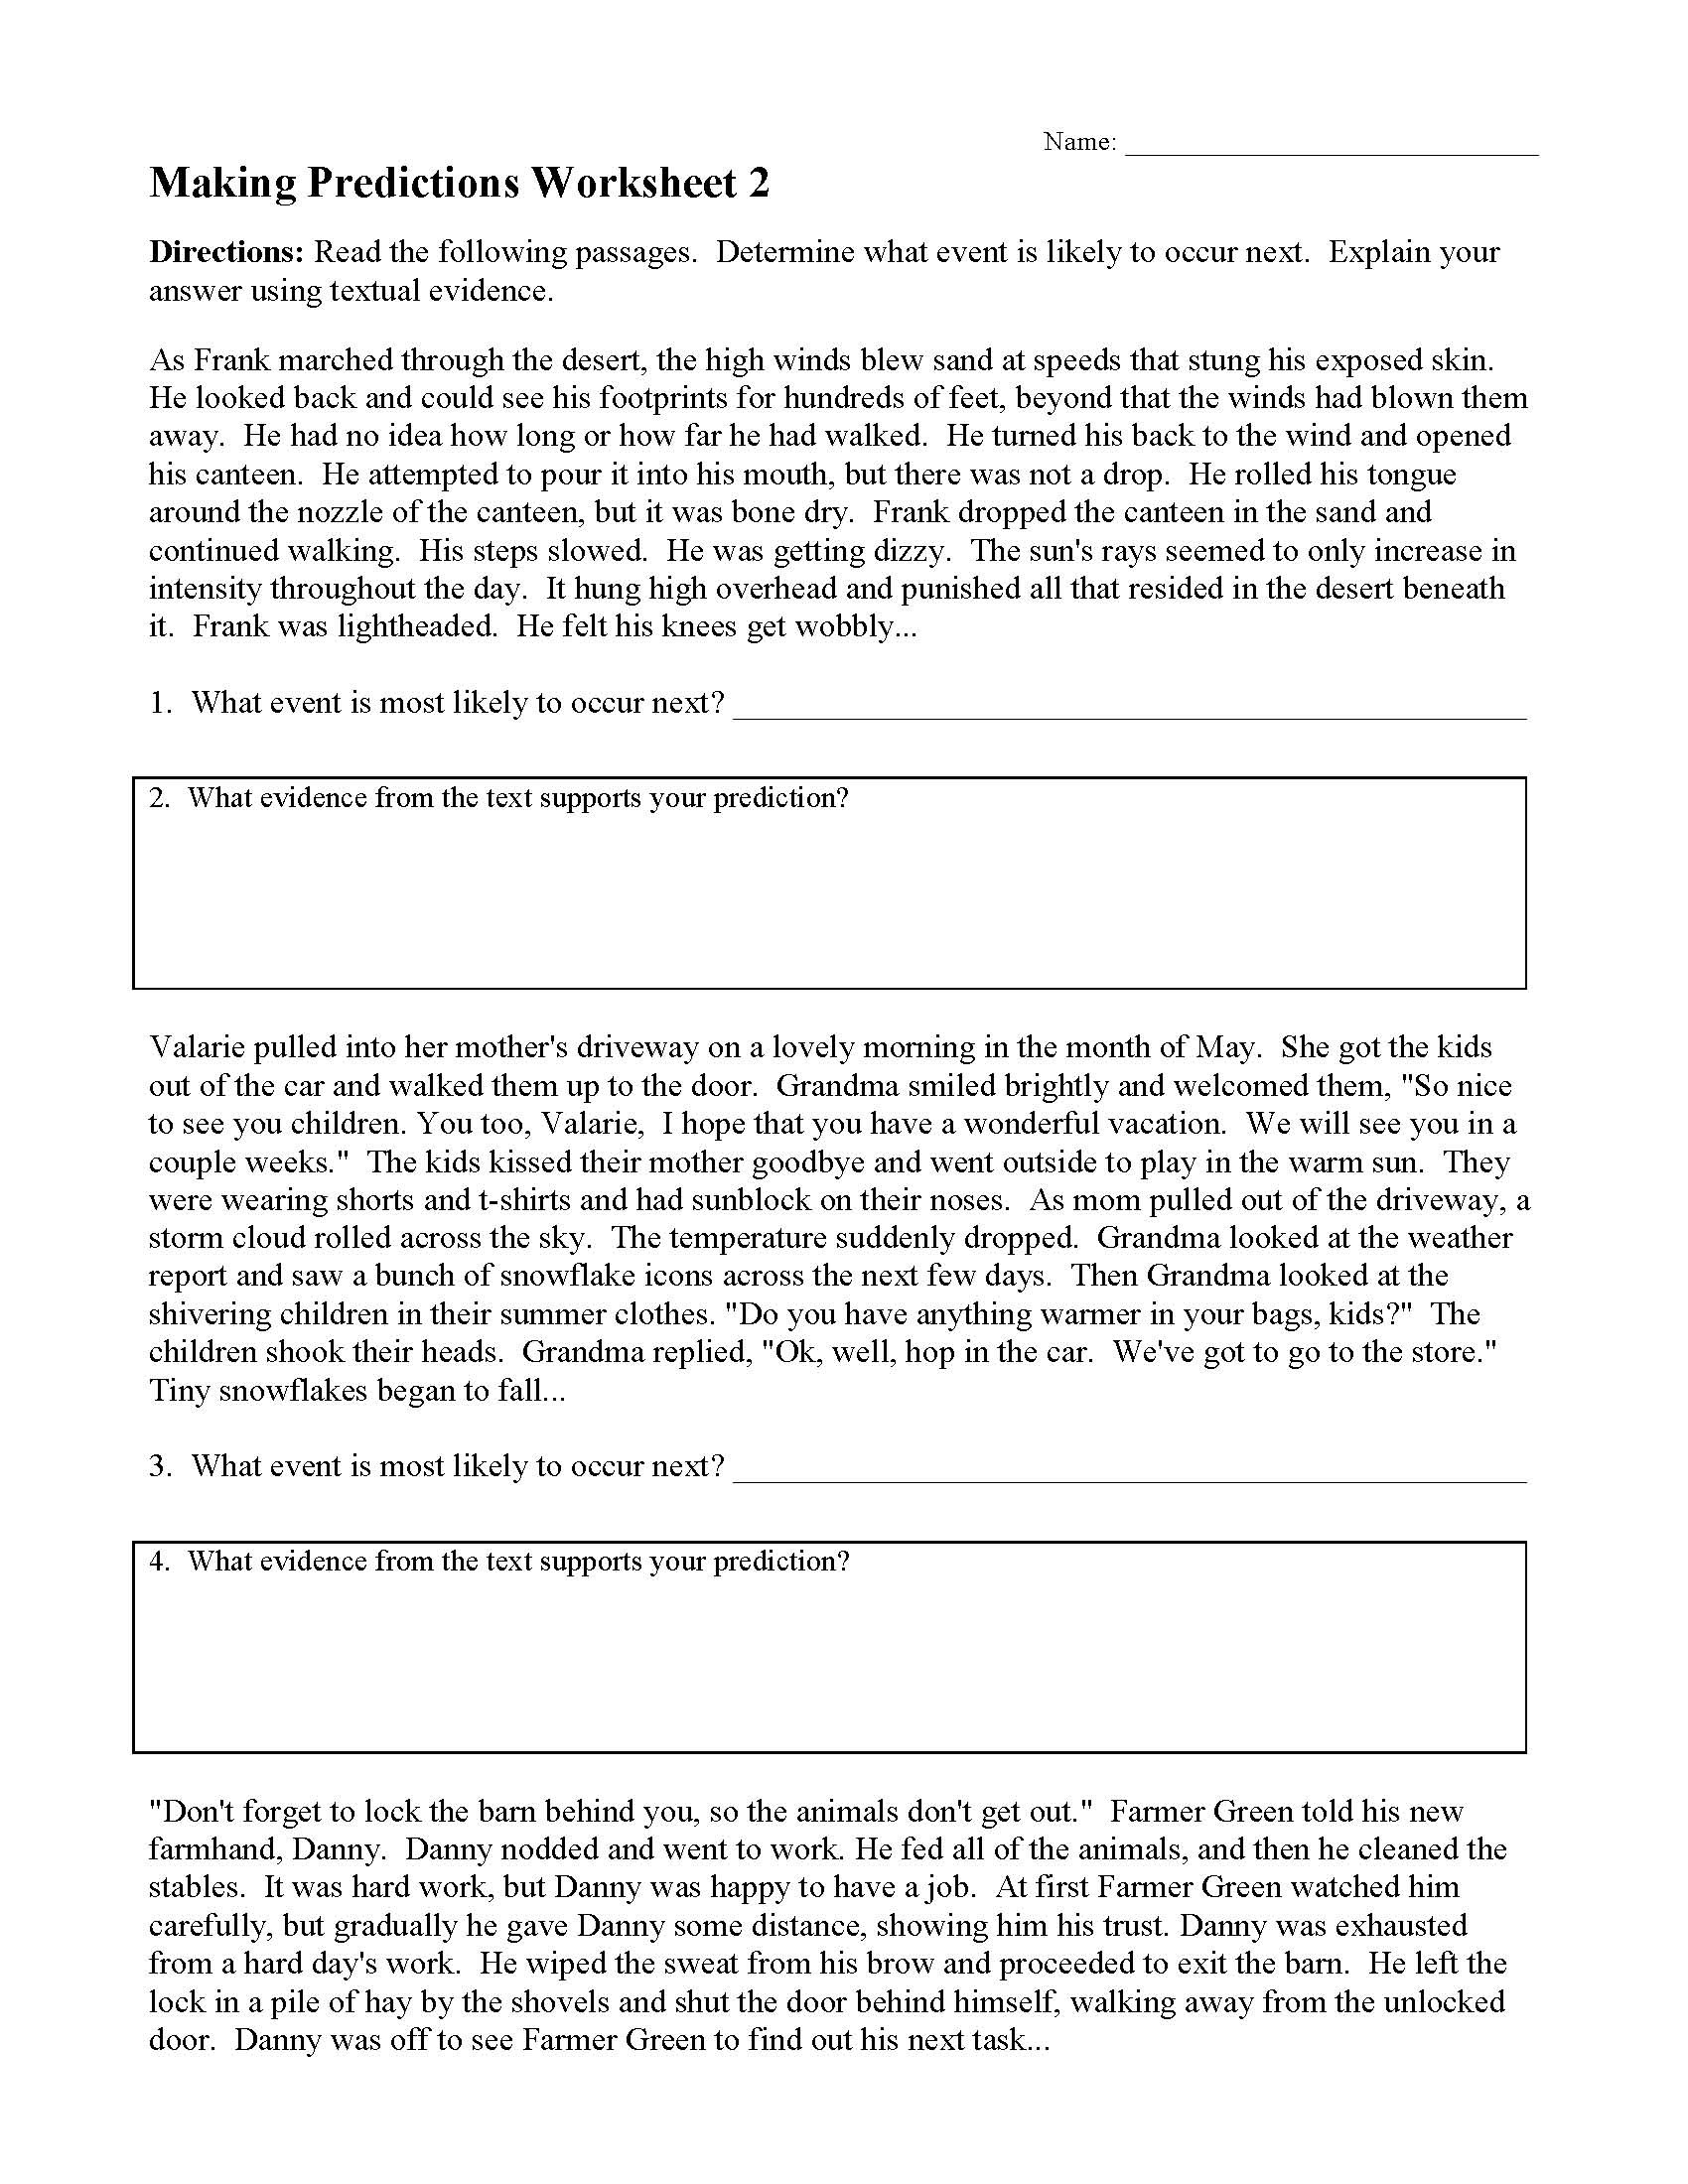 Prediction Worksheets for 2nd Grade Making Predictions Worksheets and Lessons